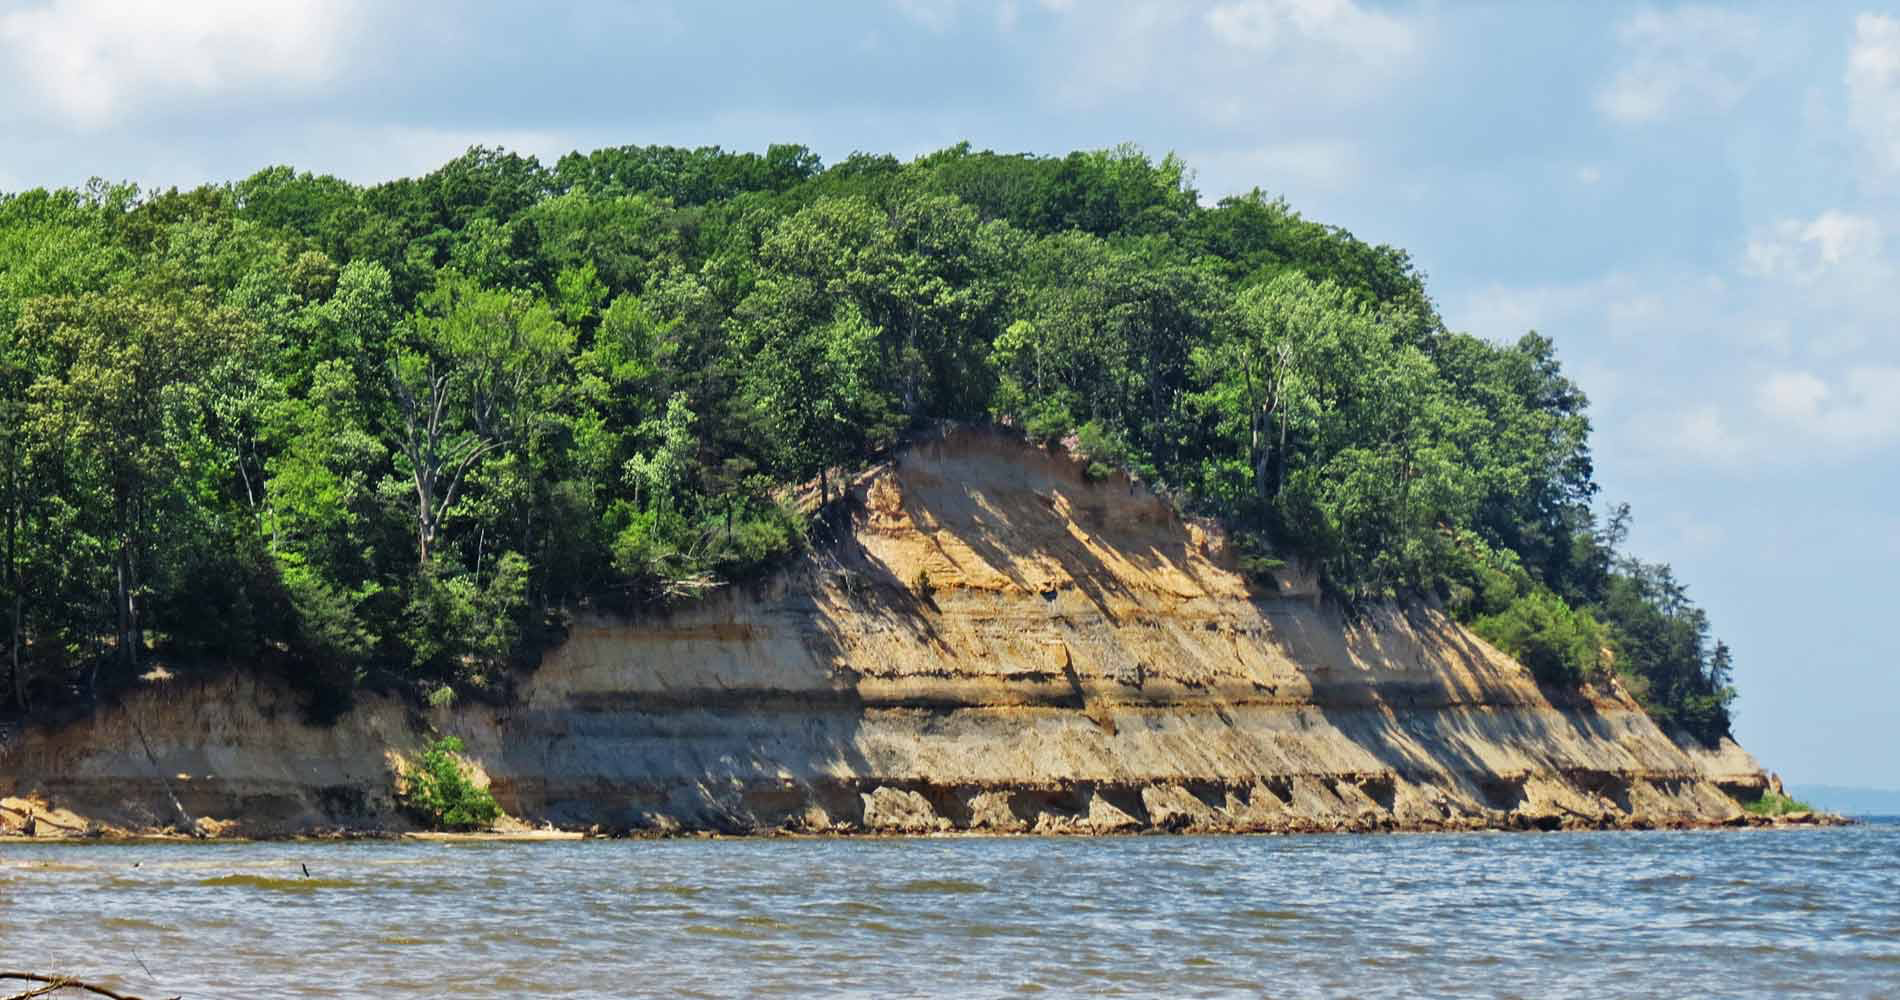 Calvert Cliffs State Park on the western side of Chesapeake Bay is a treasure trove of fossils. (Courtesy YourChesapeake.com)